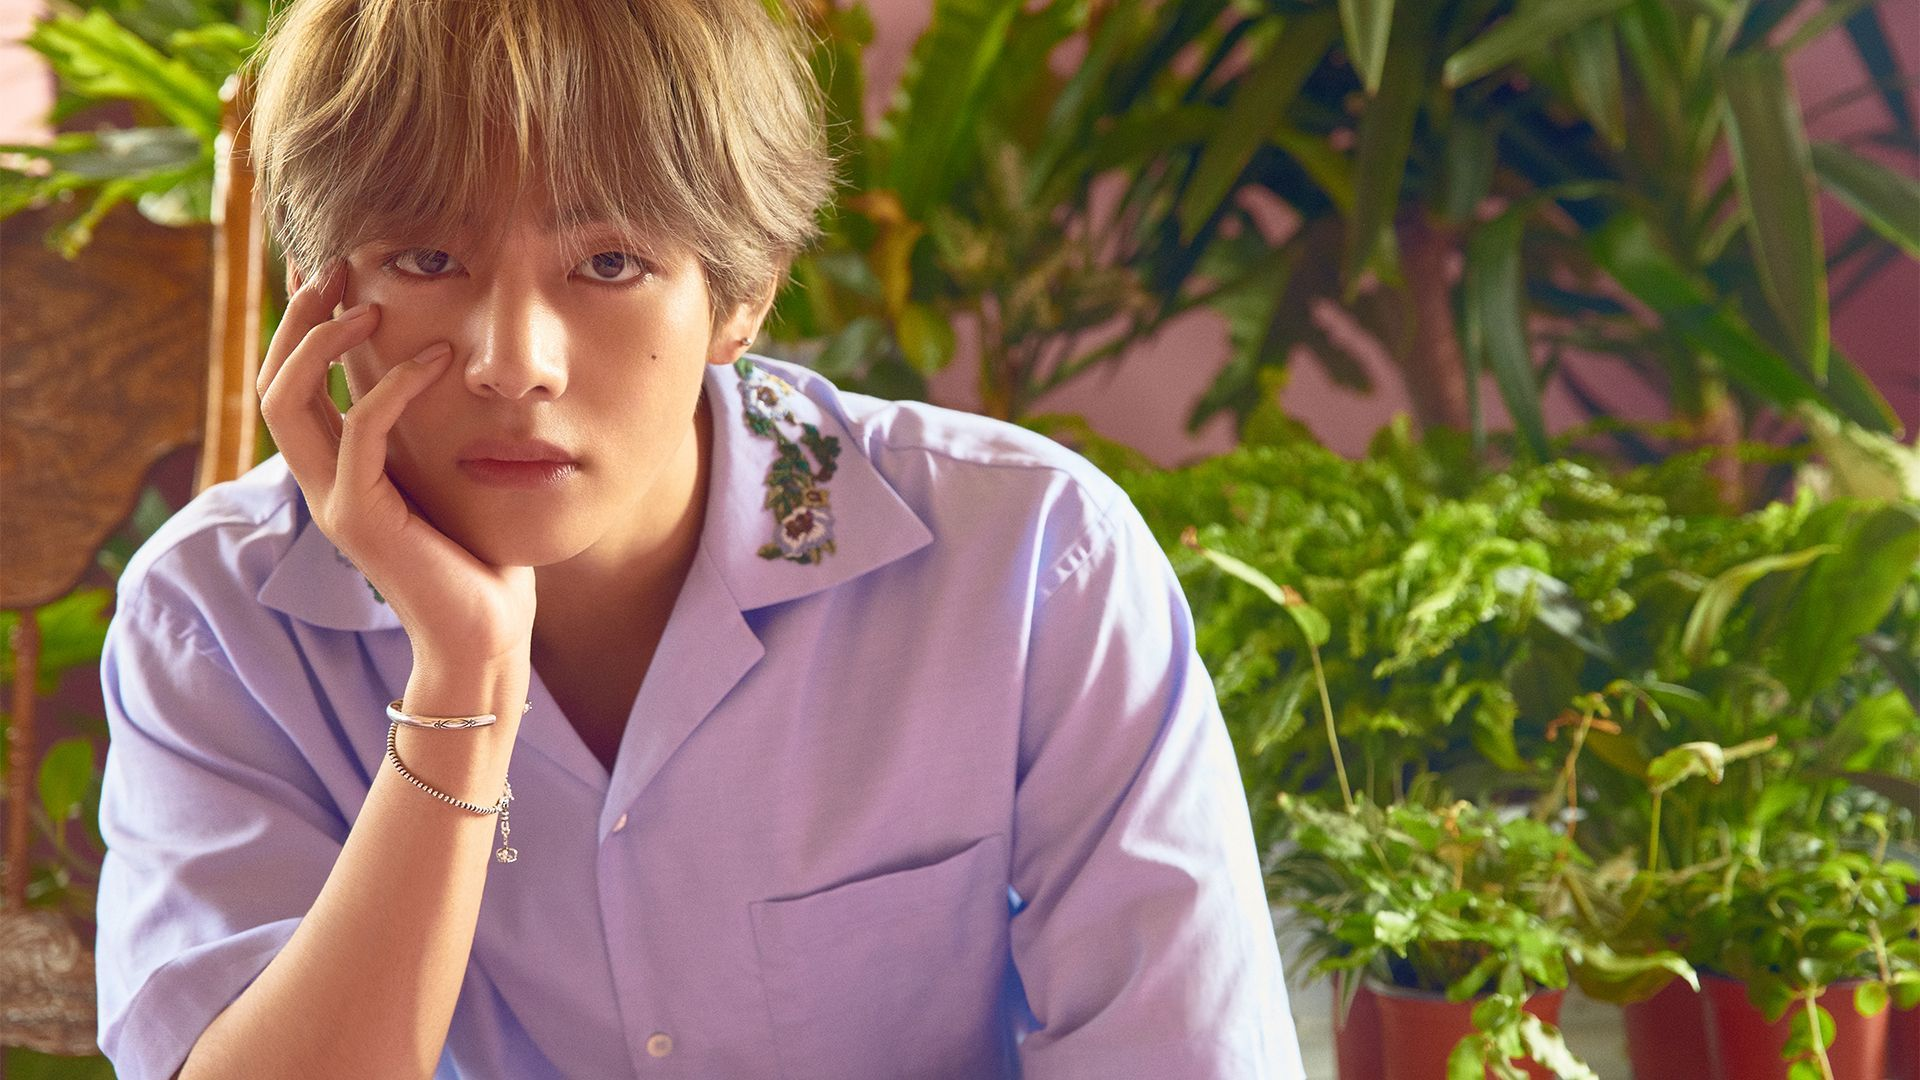 BTS V Desktop Wallpapers   Top BTS V Desktop Backgrounds 1920x1080